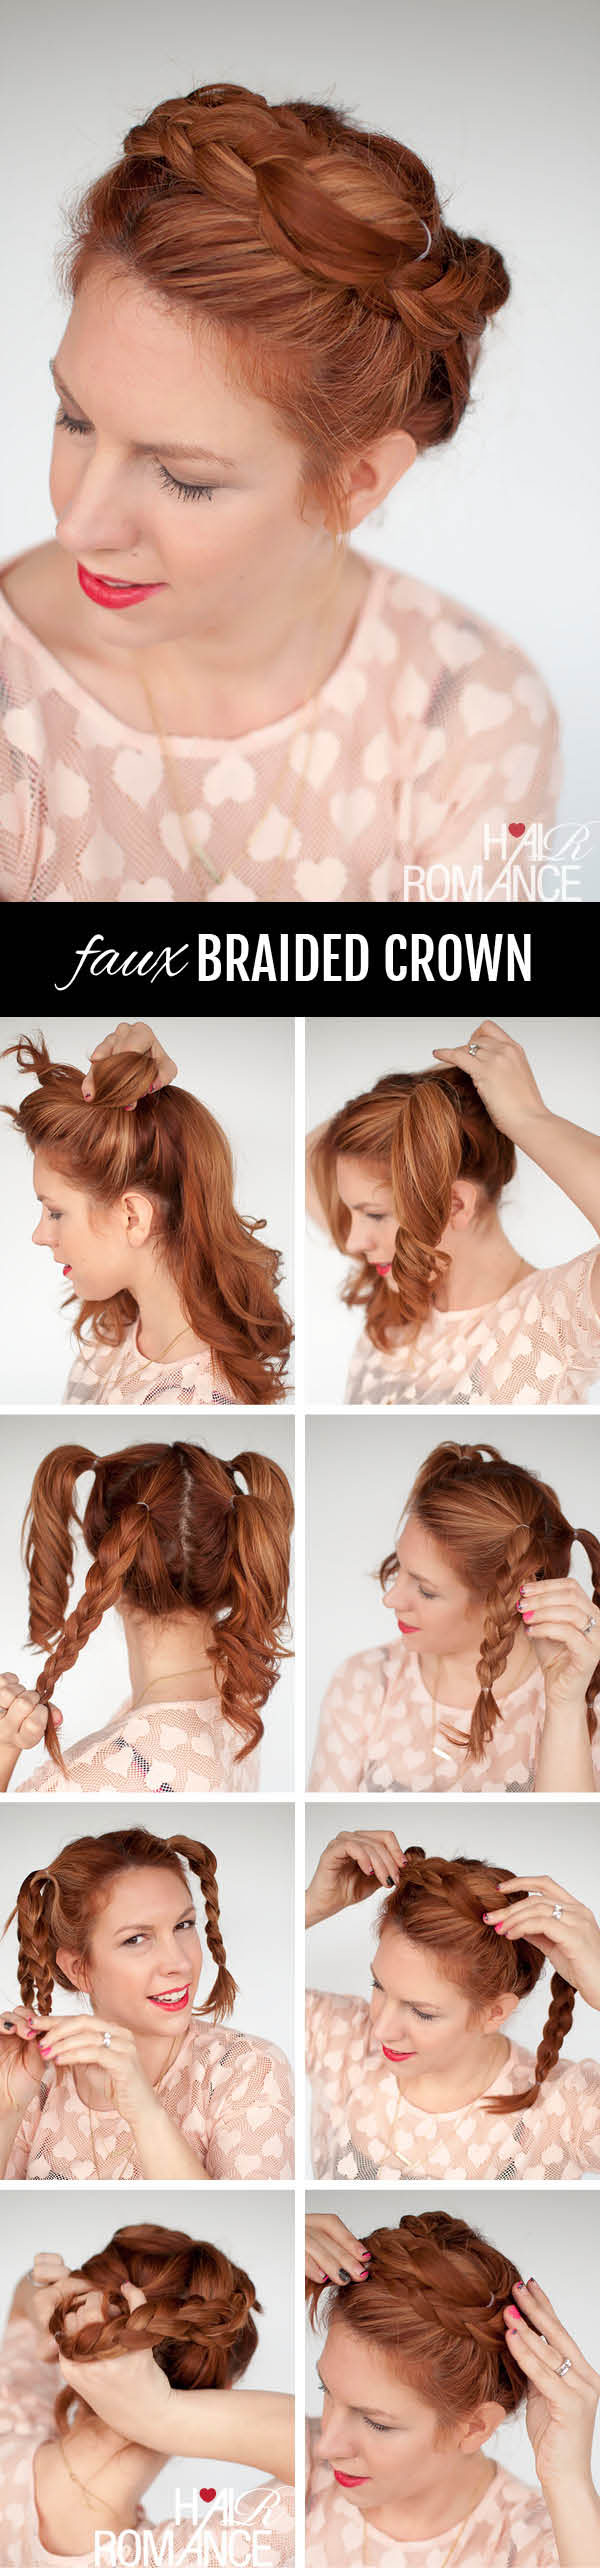 Hair Romance - Braid cheat - Faux braided crown hairstyle tutorial. Click through for full tutorial.